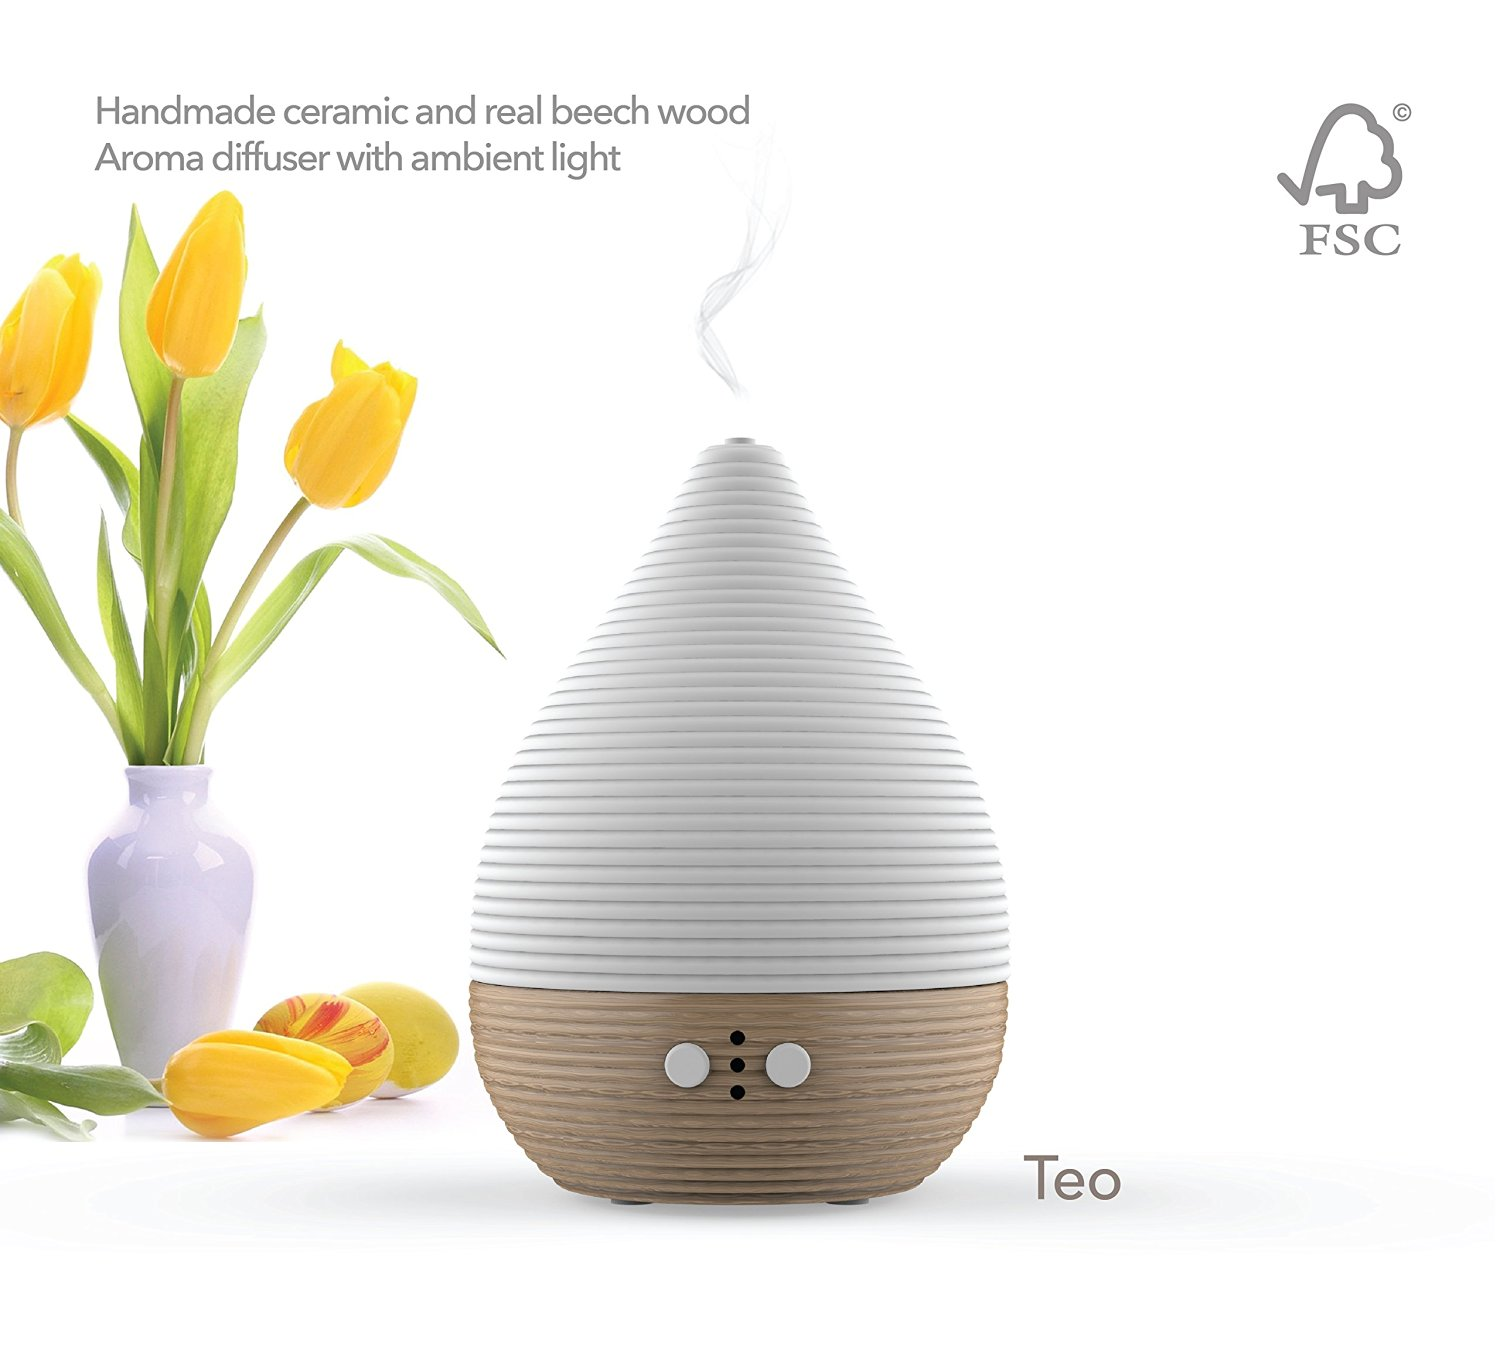 Teo Essential Oil Diffuser Review  A Handmade Ceramic and